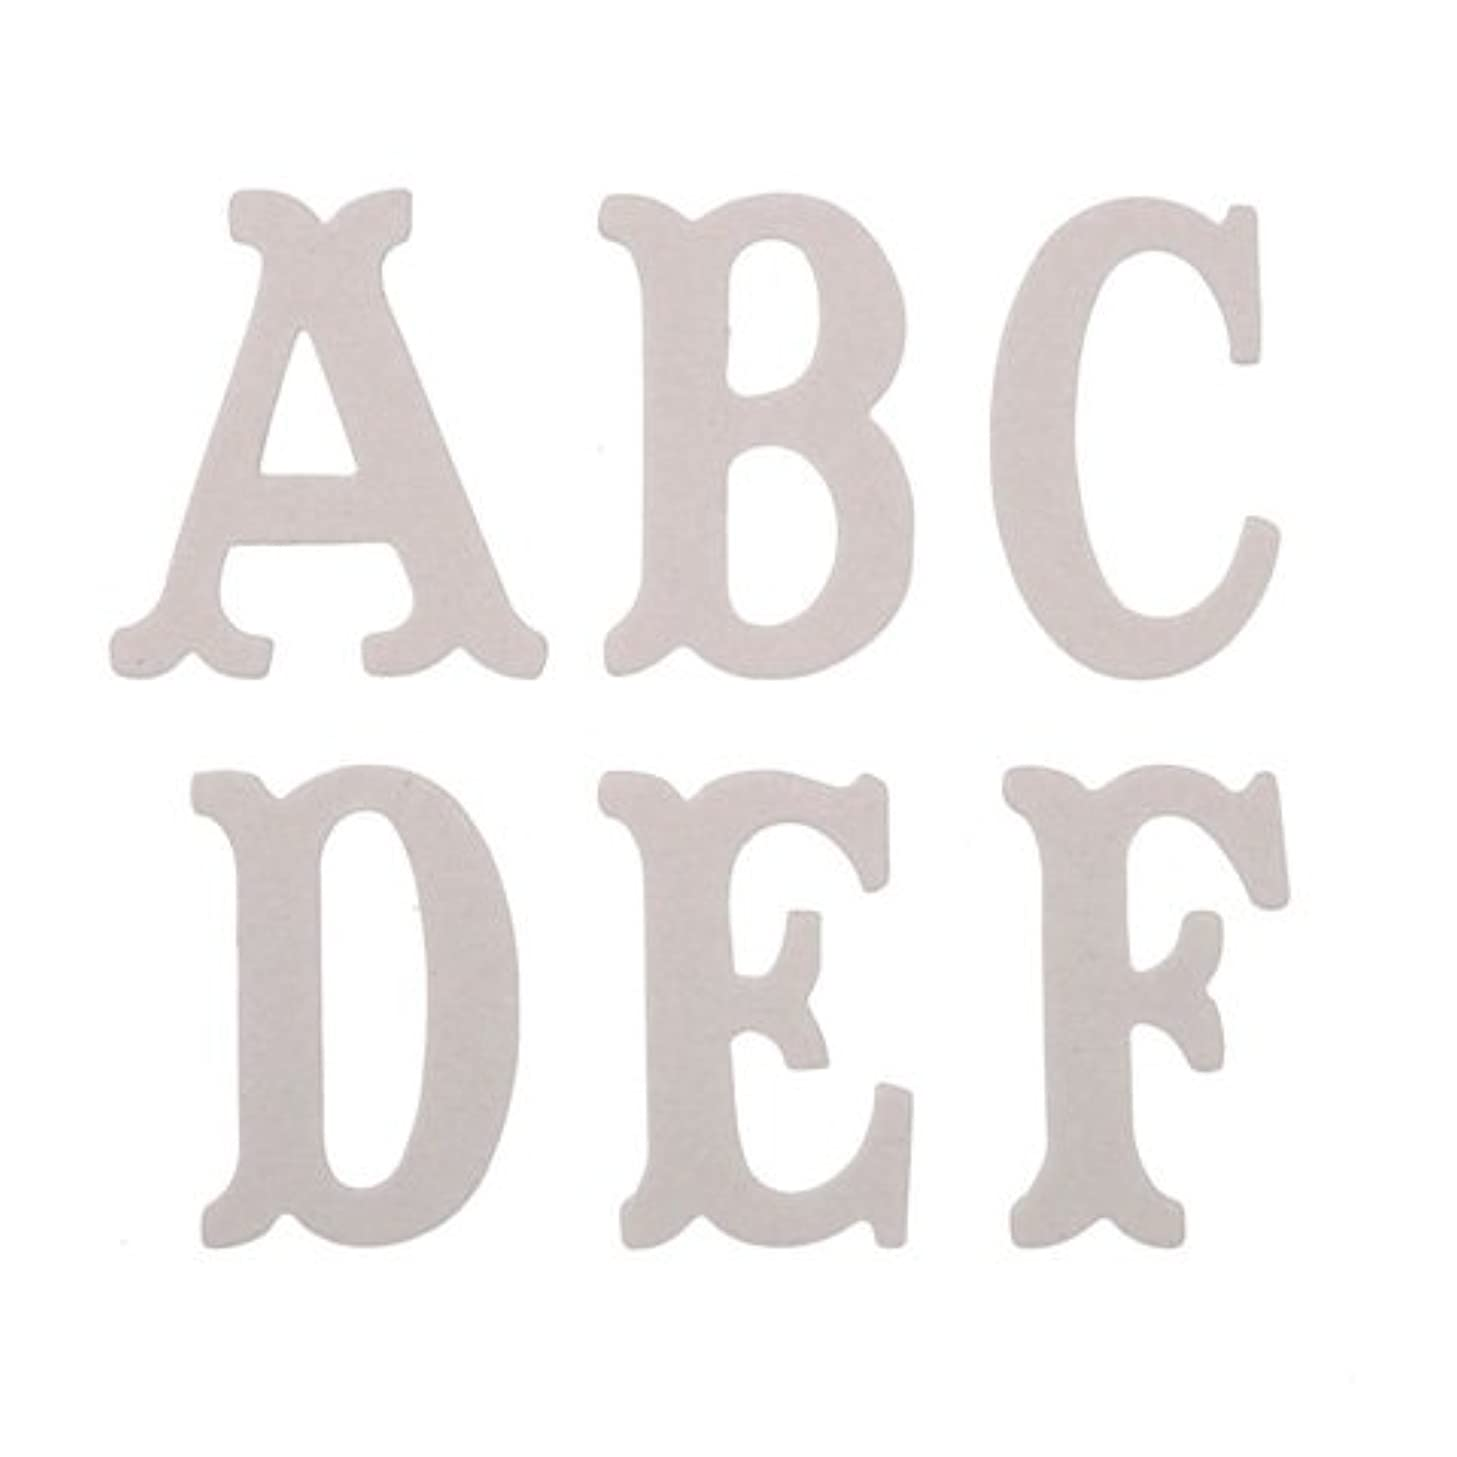 Package of 52 Stylish Chipboard Letters Are Perfect for a Variety of Do-it-yourself Projects.